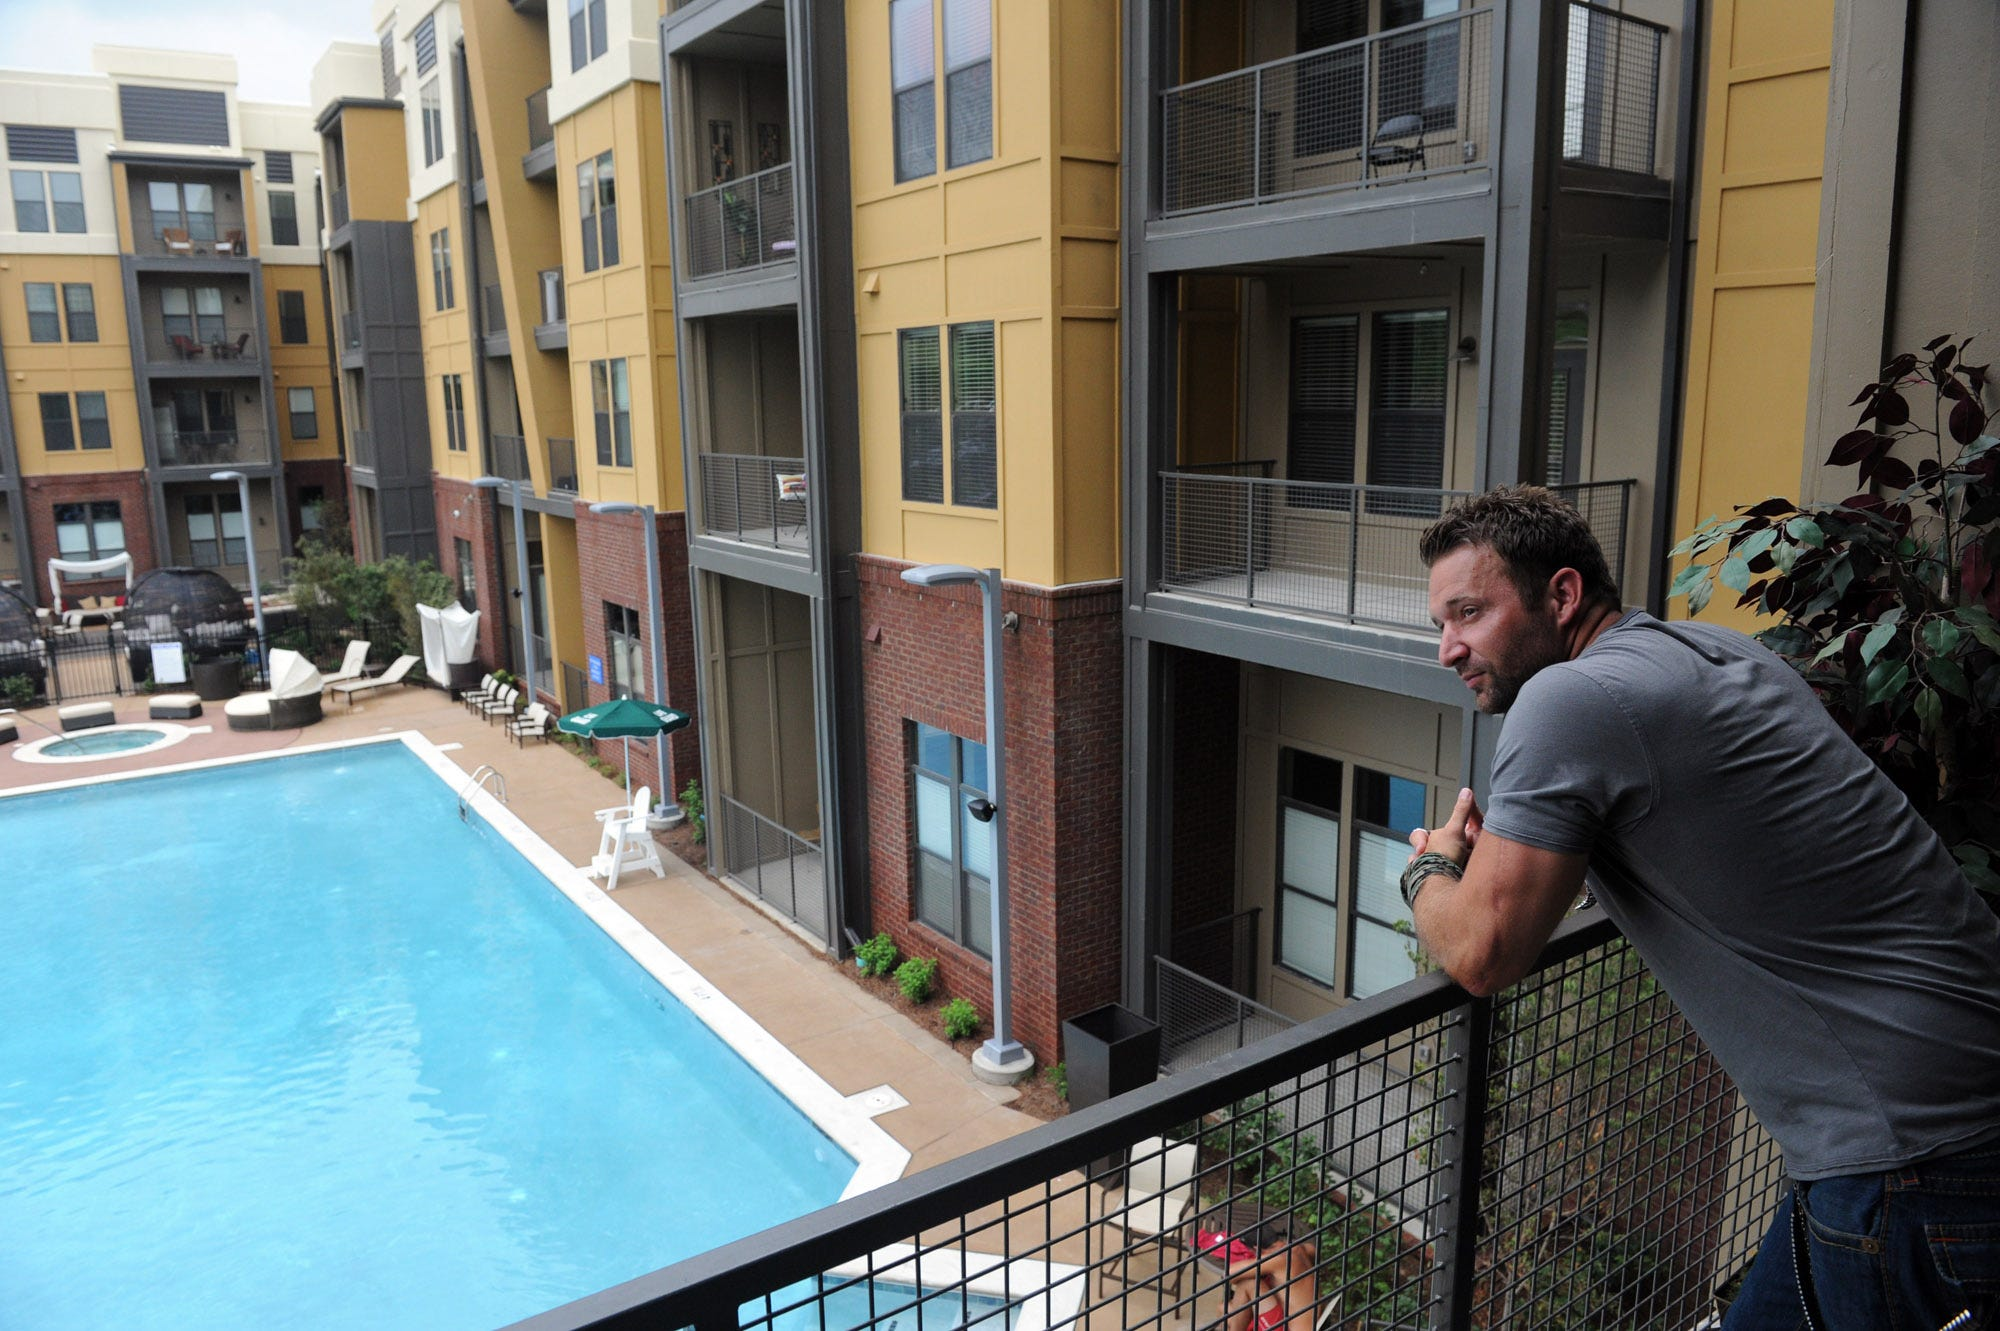 Luxury Apartments For Rent | The Flats At Taylor Place, Nashville